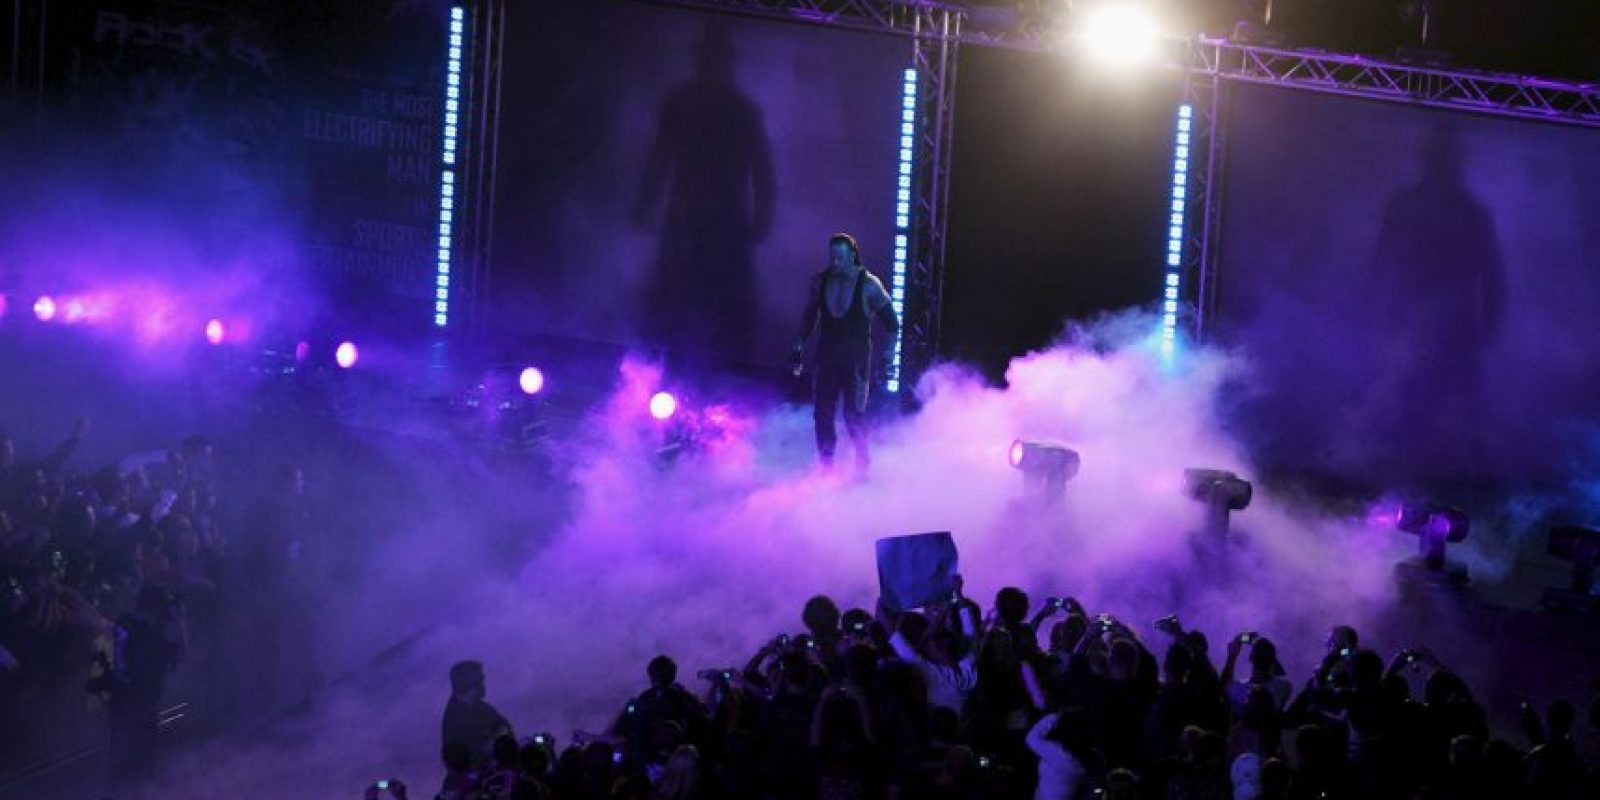 Se espera que Undertaker regrese en Wrestlemania 33